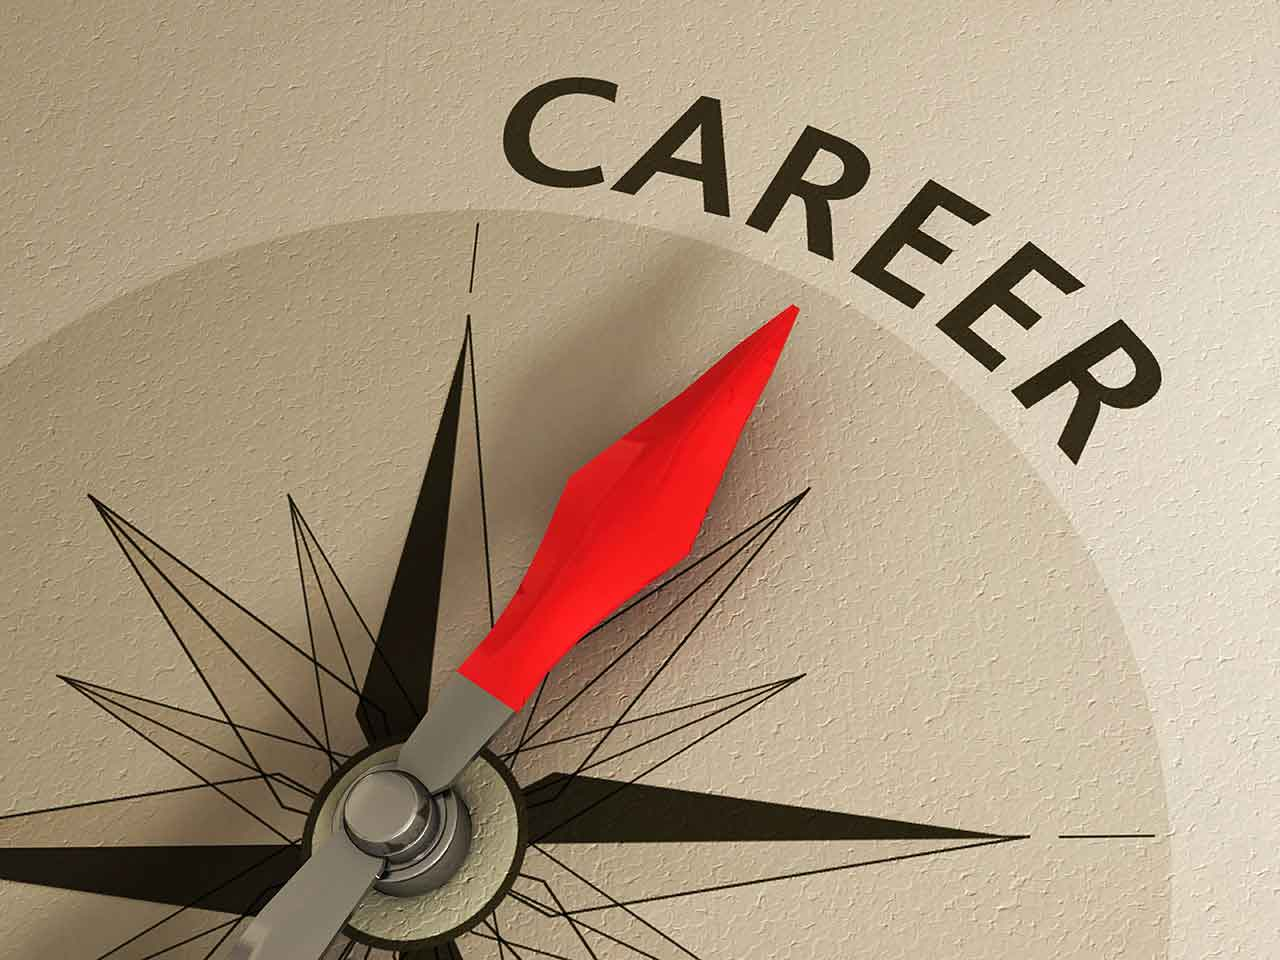 changing careers in midlife saga compass pointing to the word career